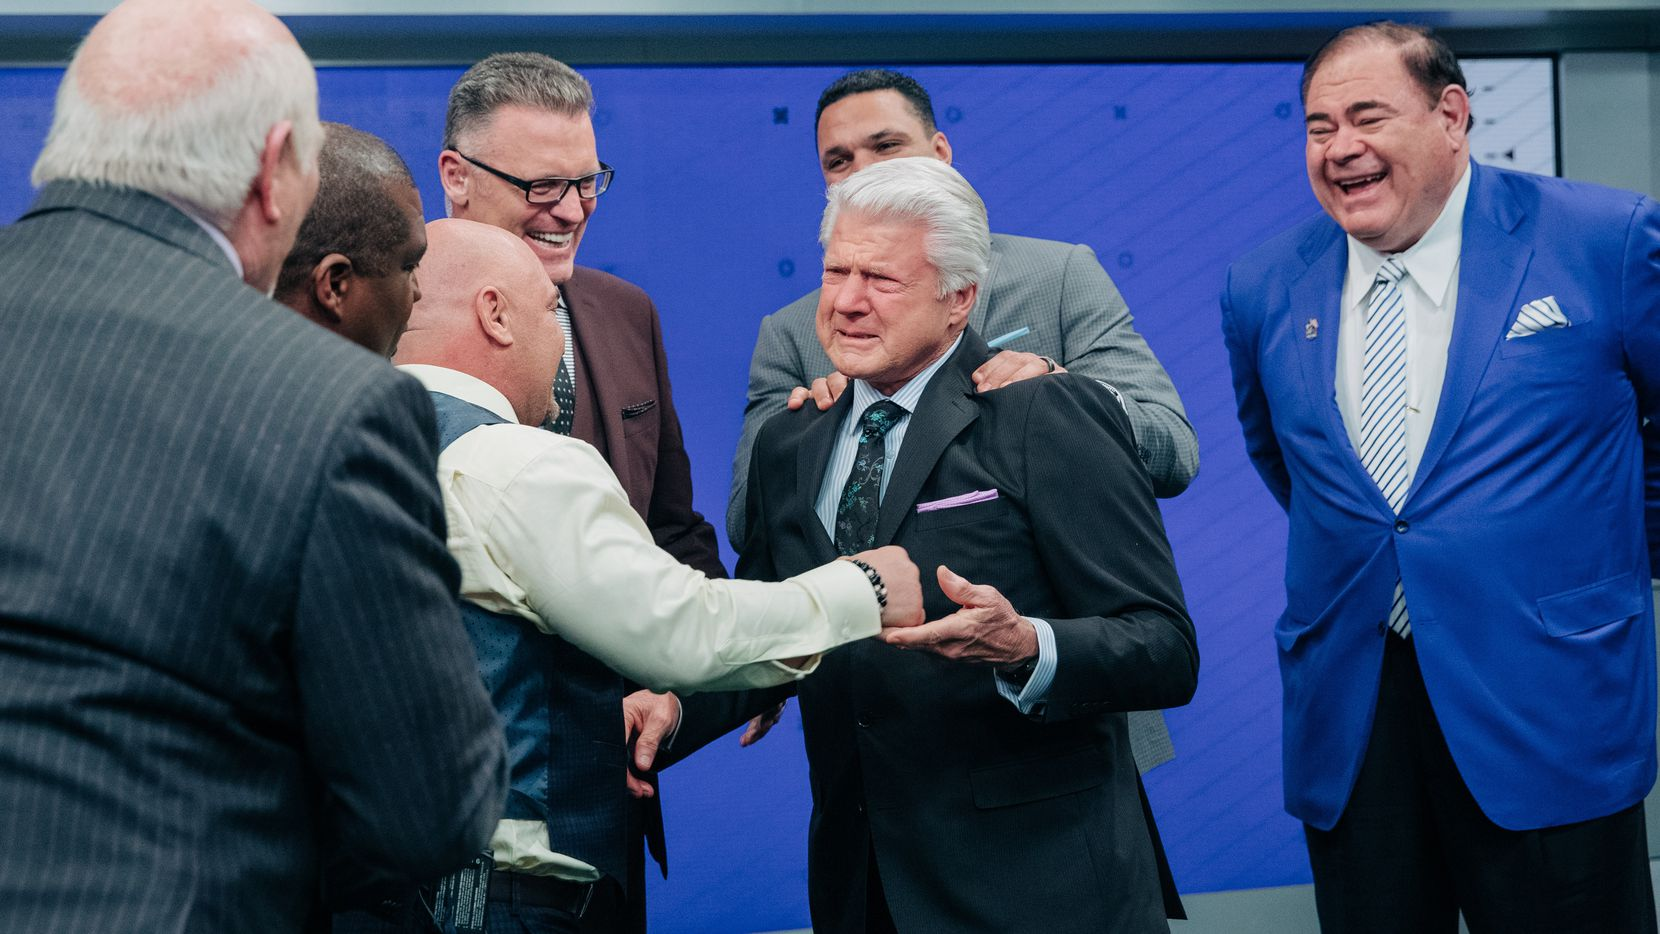 Jimmy Johnson's Fox Sports colleagues congratulate him after Johnson received the news that he'd been elected to the Pro Football Hall of Fame by the Hall's president, David Baker (at right, in blue jacket).